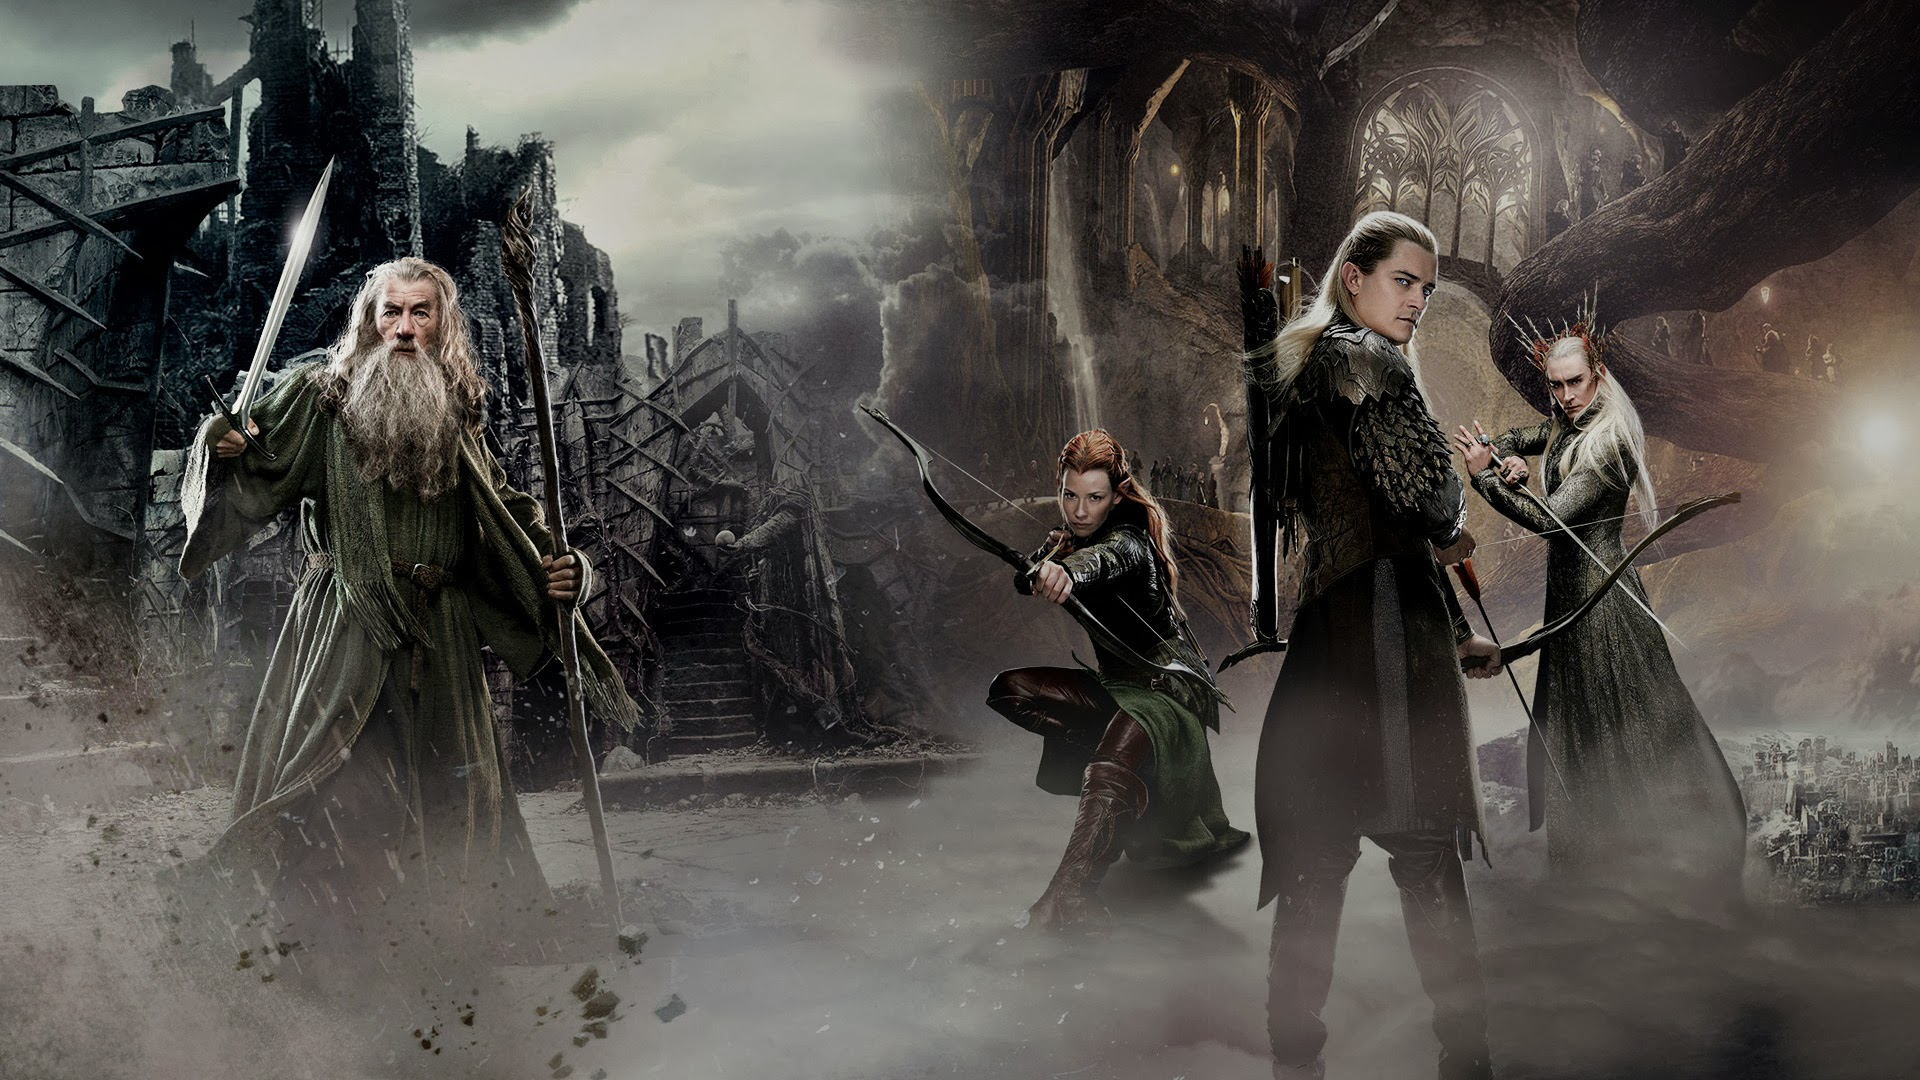 New The Hobbit 2 Movie Wallpaper HiresMOVIEWALLcom 1920x1080